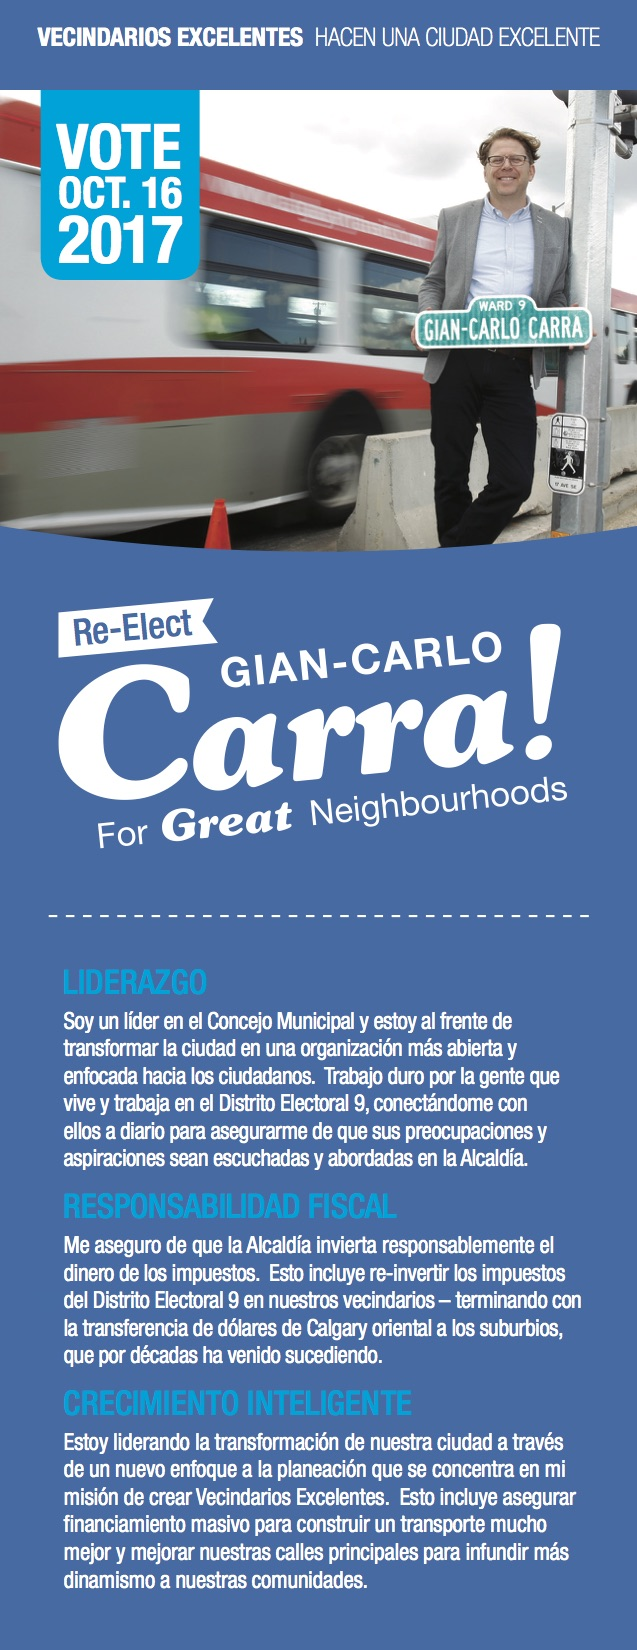 RE-Elect_Gian-Carlo_Carra_(Spanish).jpg